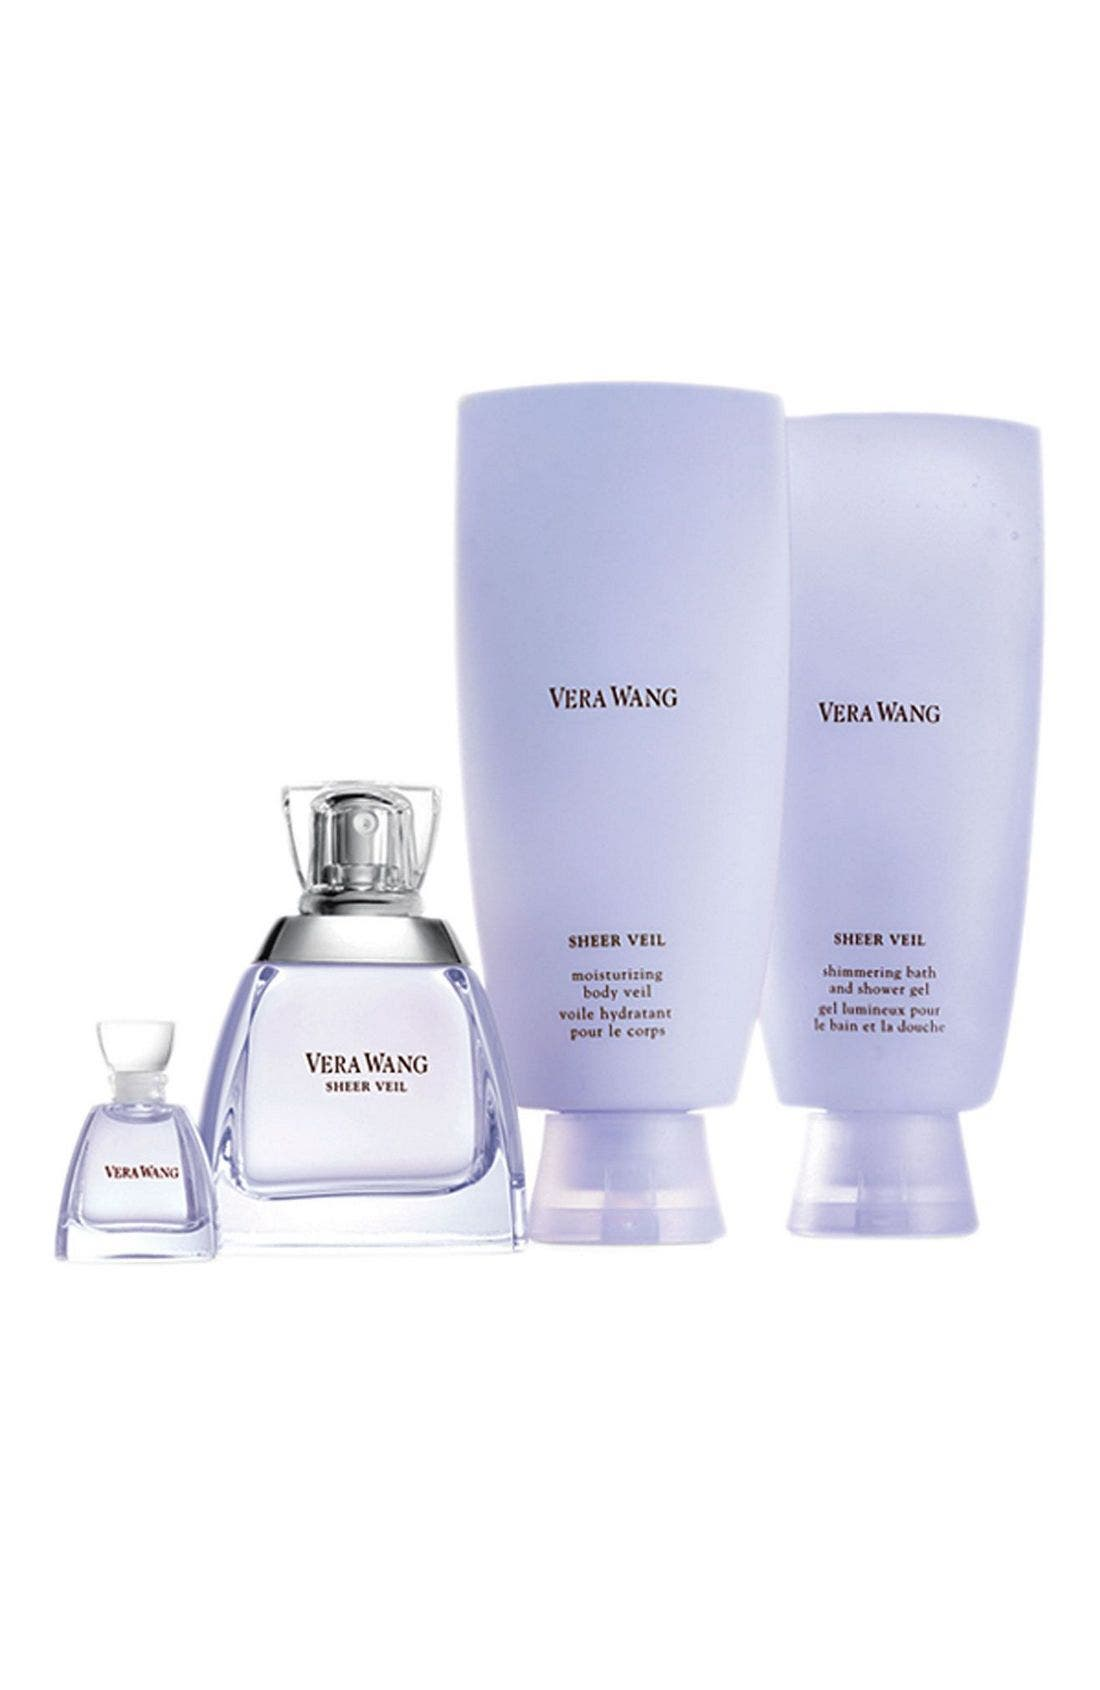 VERA WANG 'Sheer Veil' Summer Gift Set, Main, color, 000